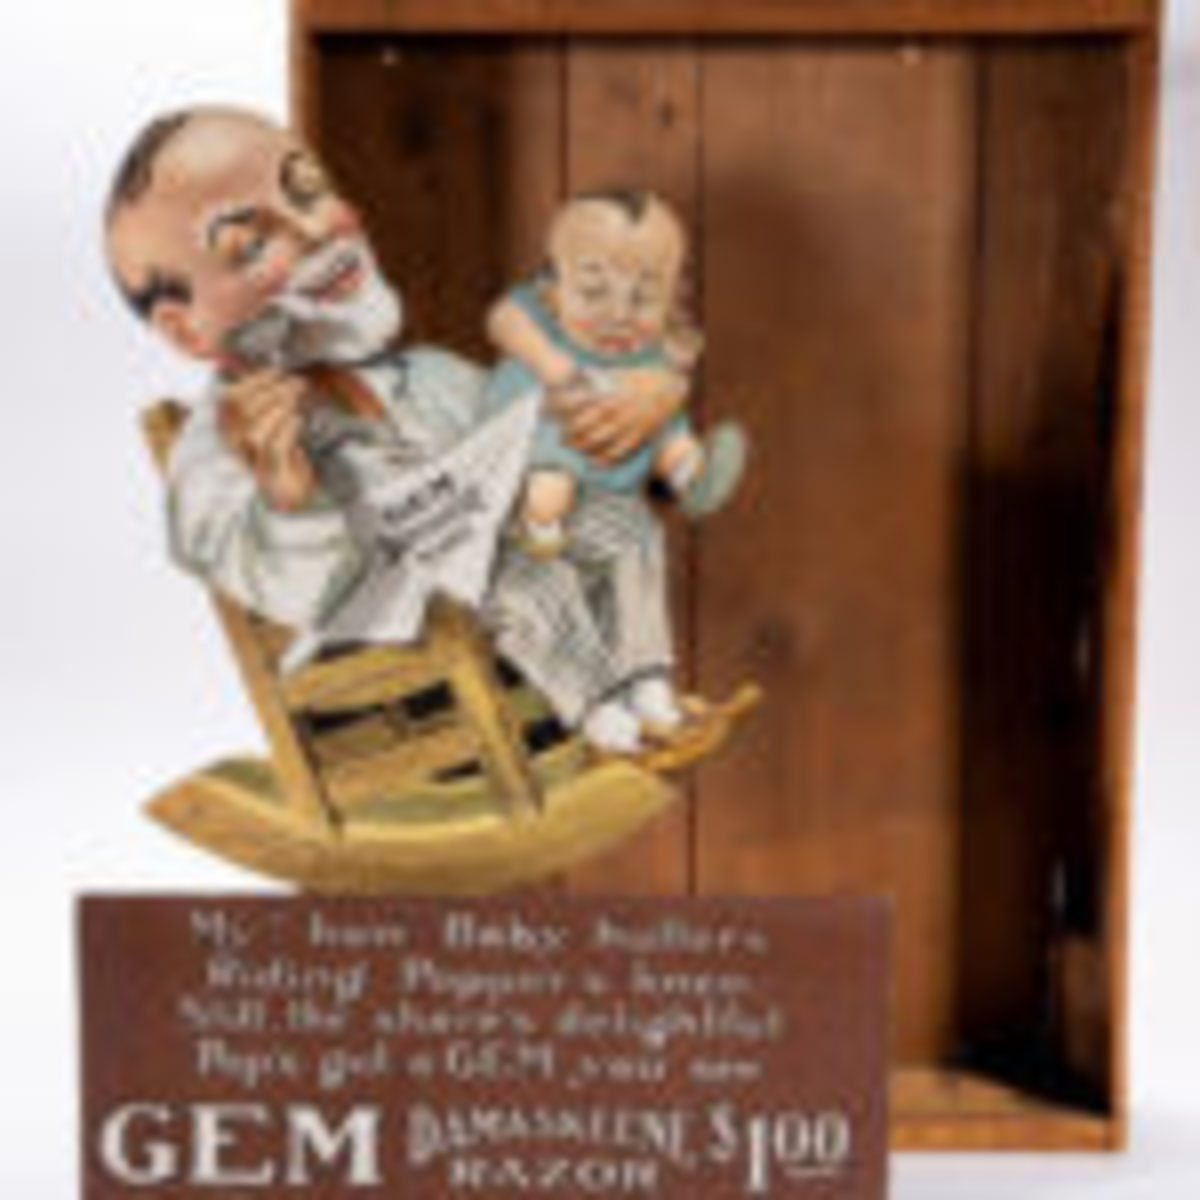 GEM Razors mechanical store display, Lot 1159, $4,680.